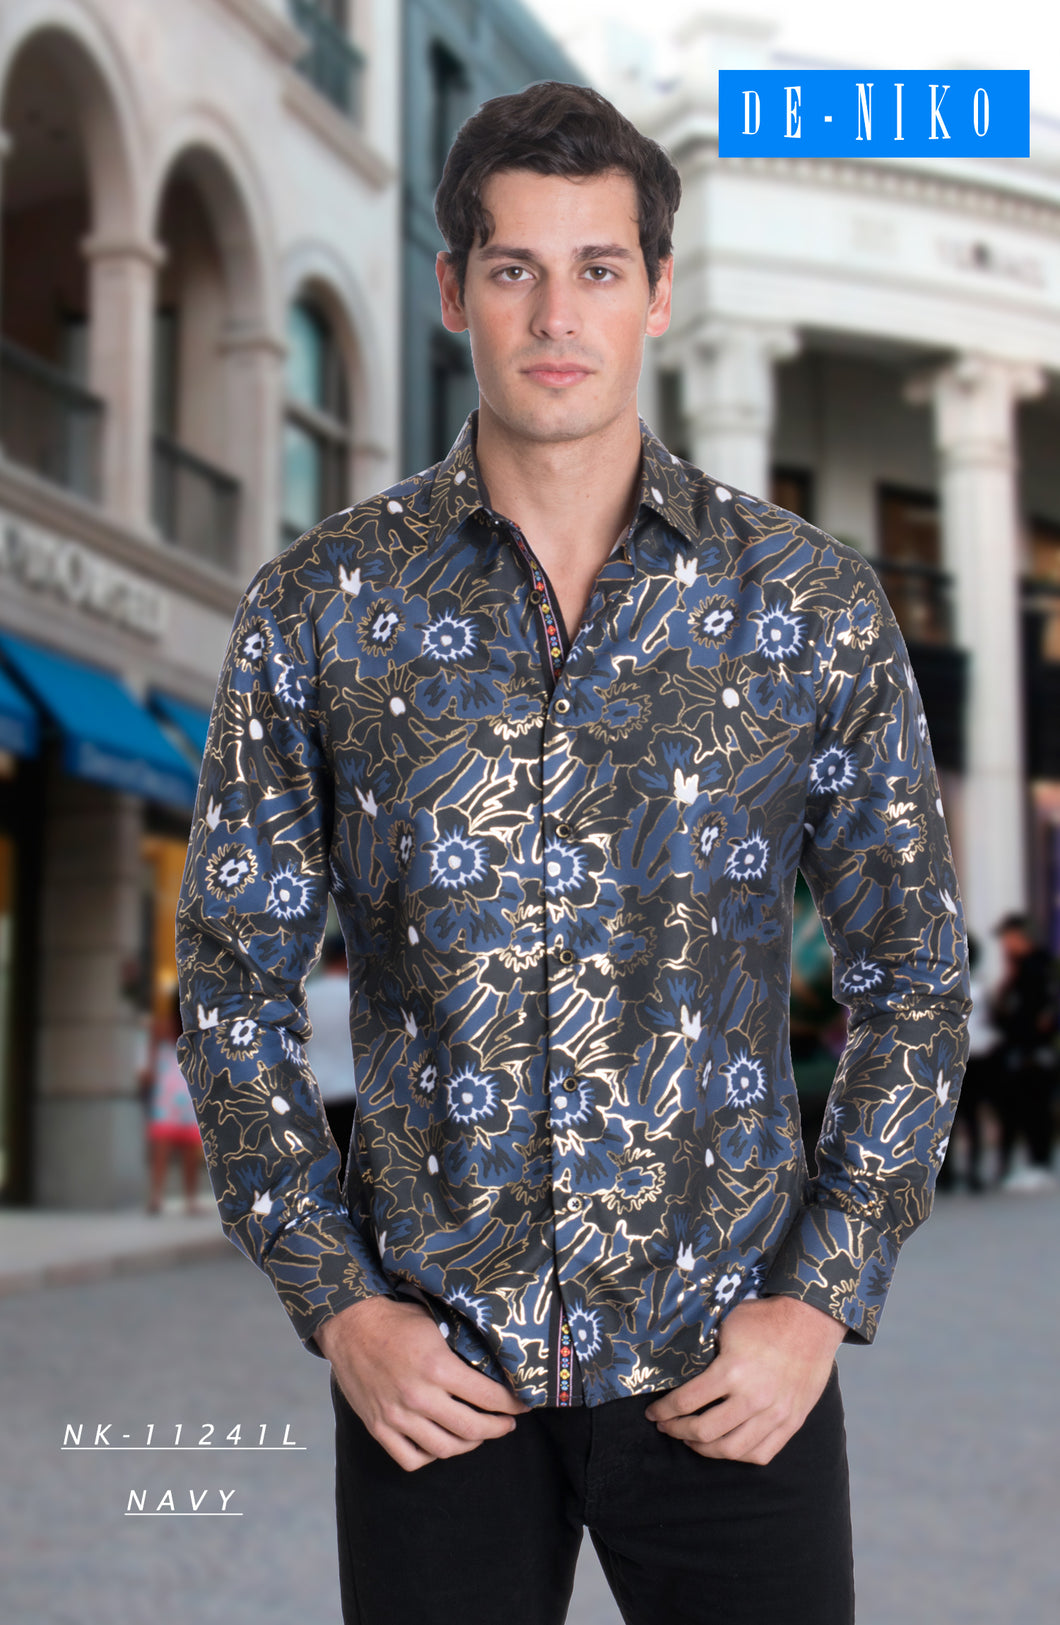 Men's Shirt NK11241L NAVY